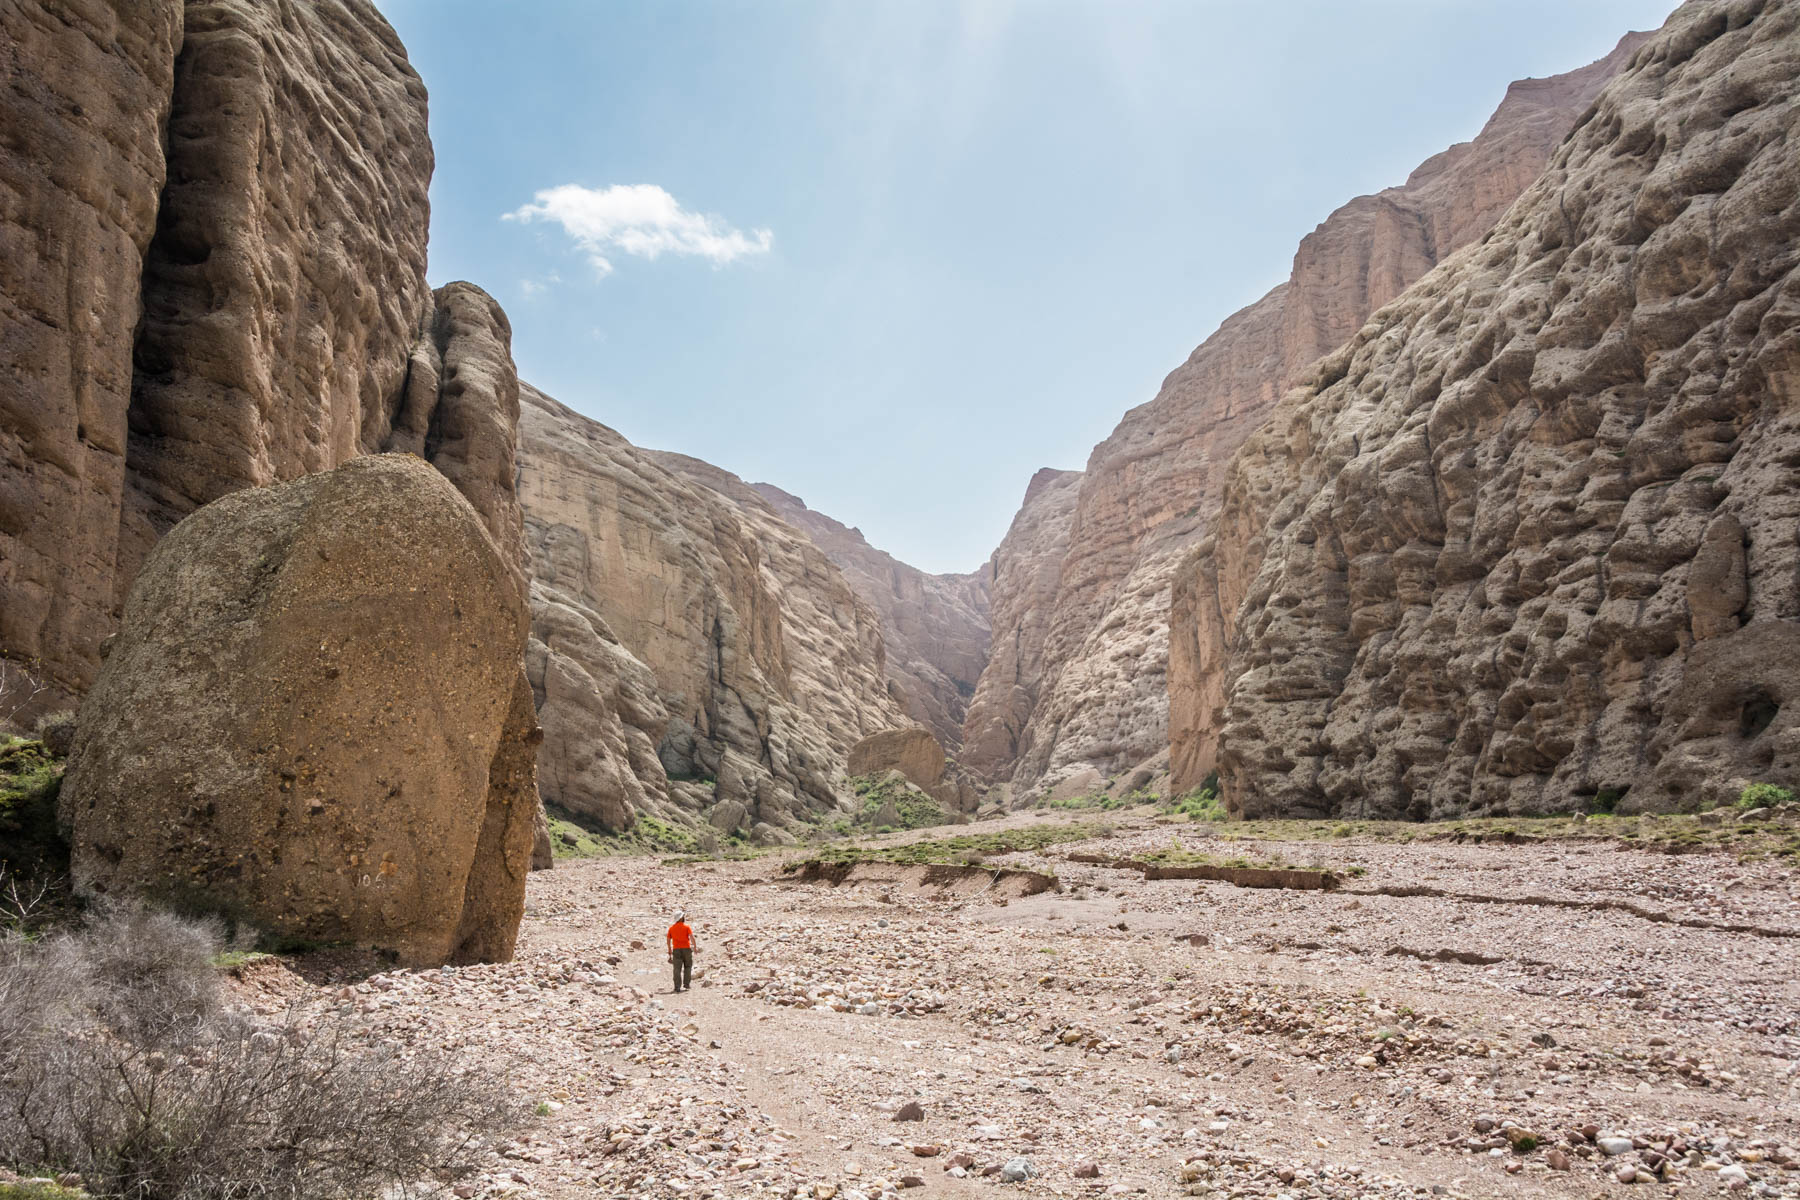 A man walking through red rock gorges